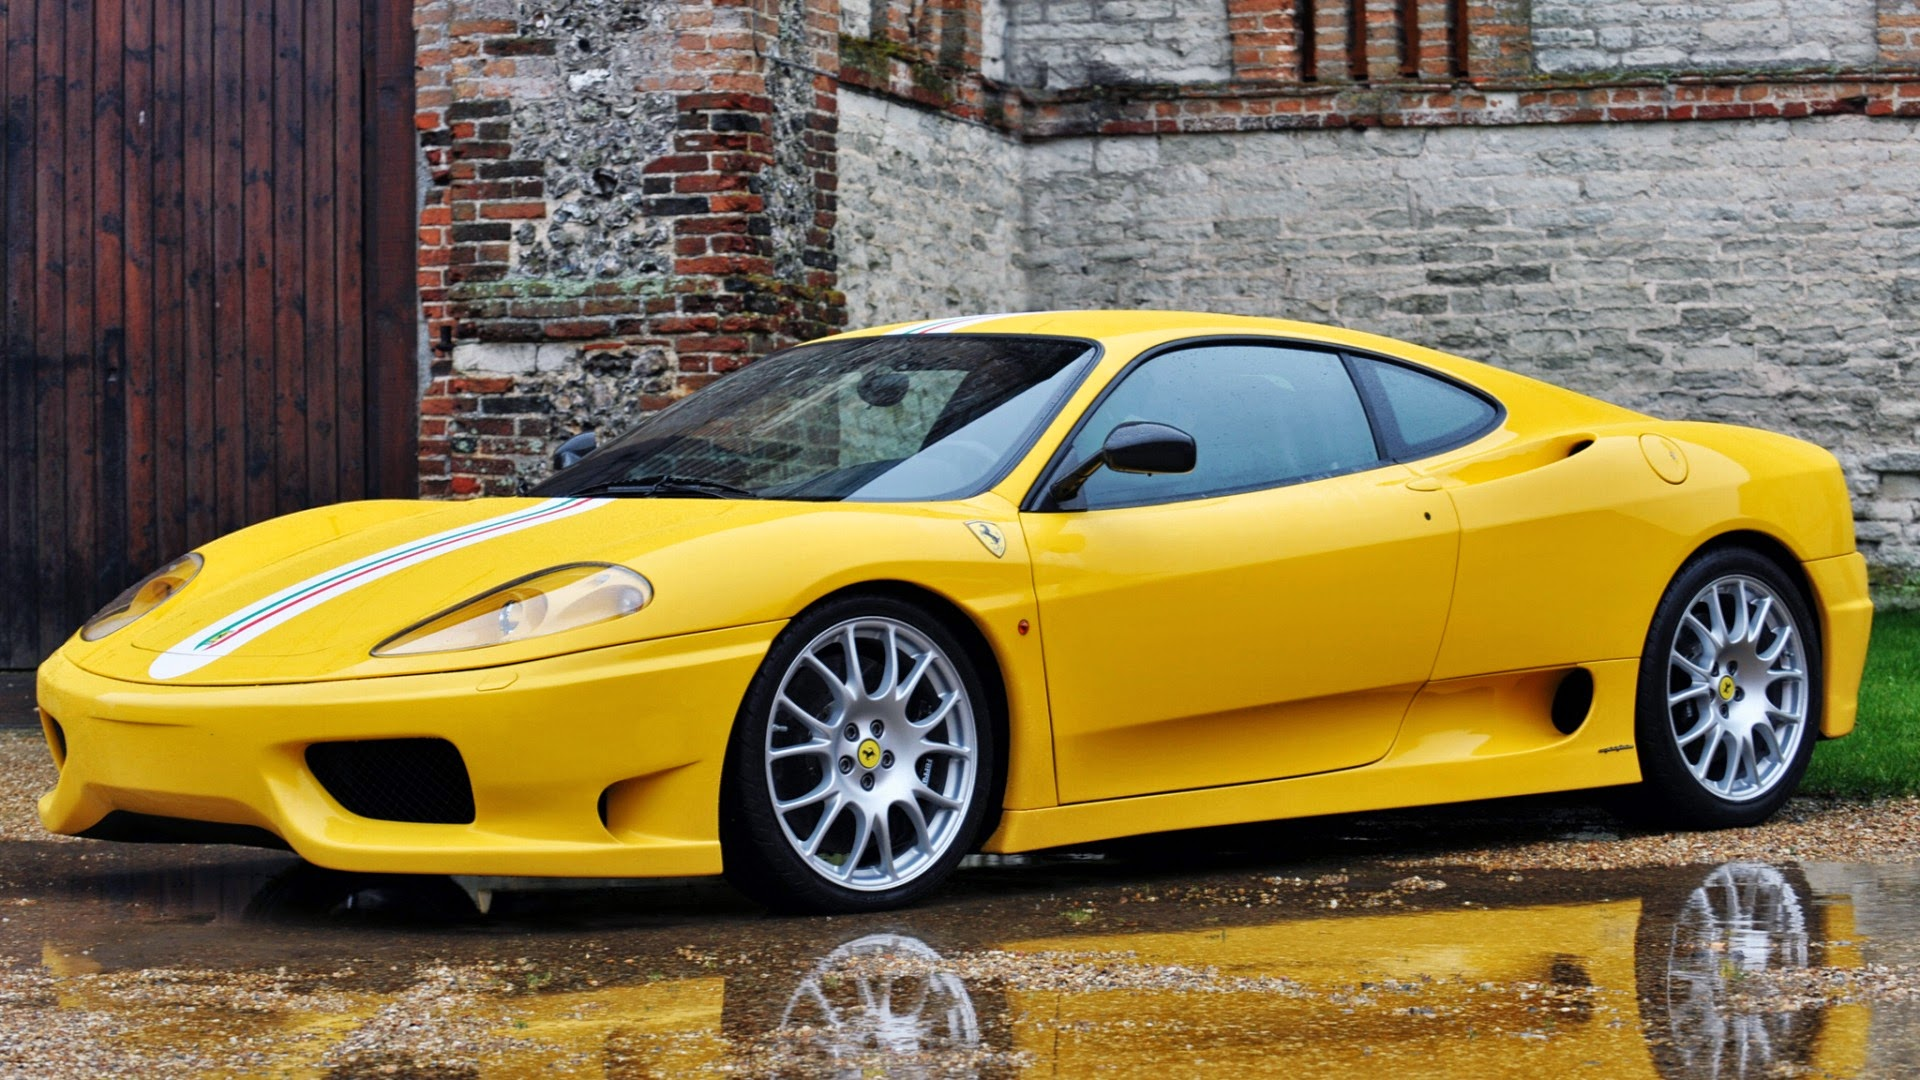 Fastest Car In The World Wallpaper 2015 Ferrari 360 Challenge Stradale Full Hd En Fondos 1080